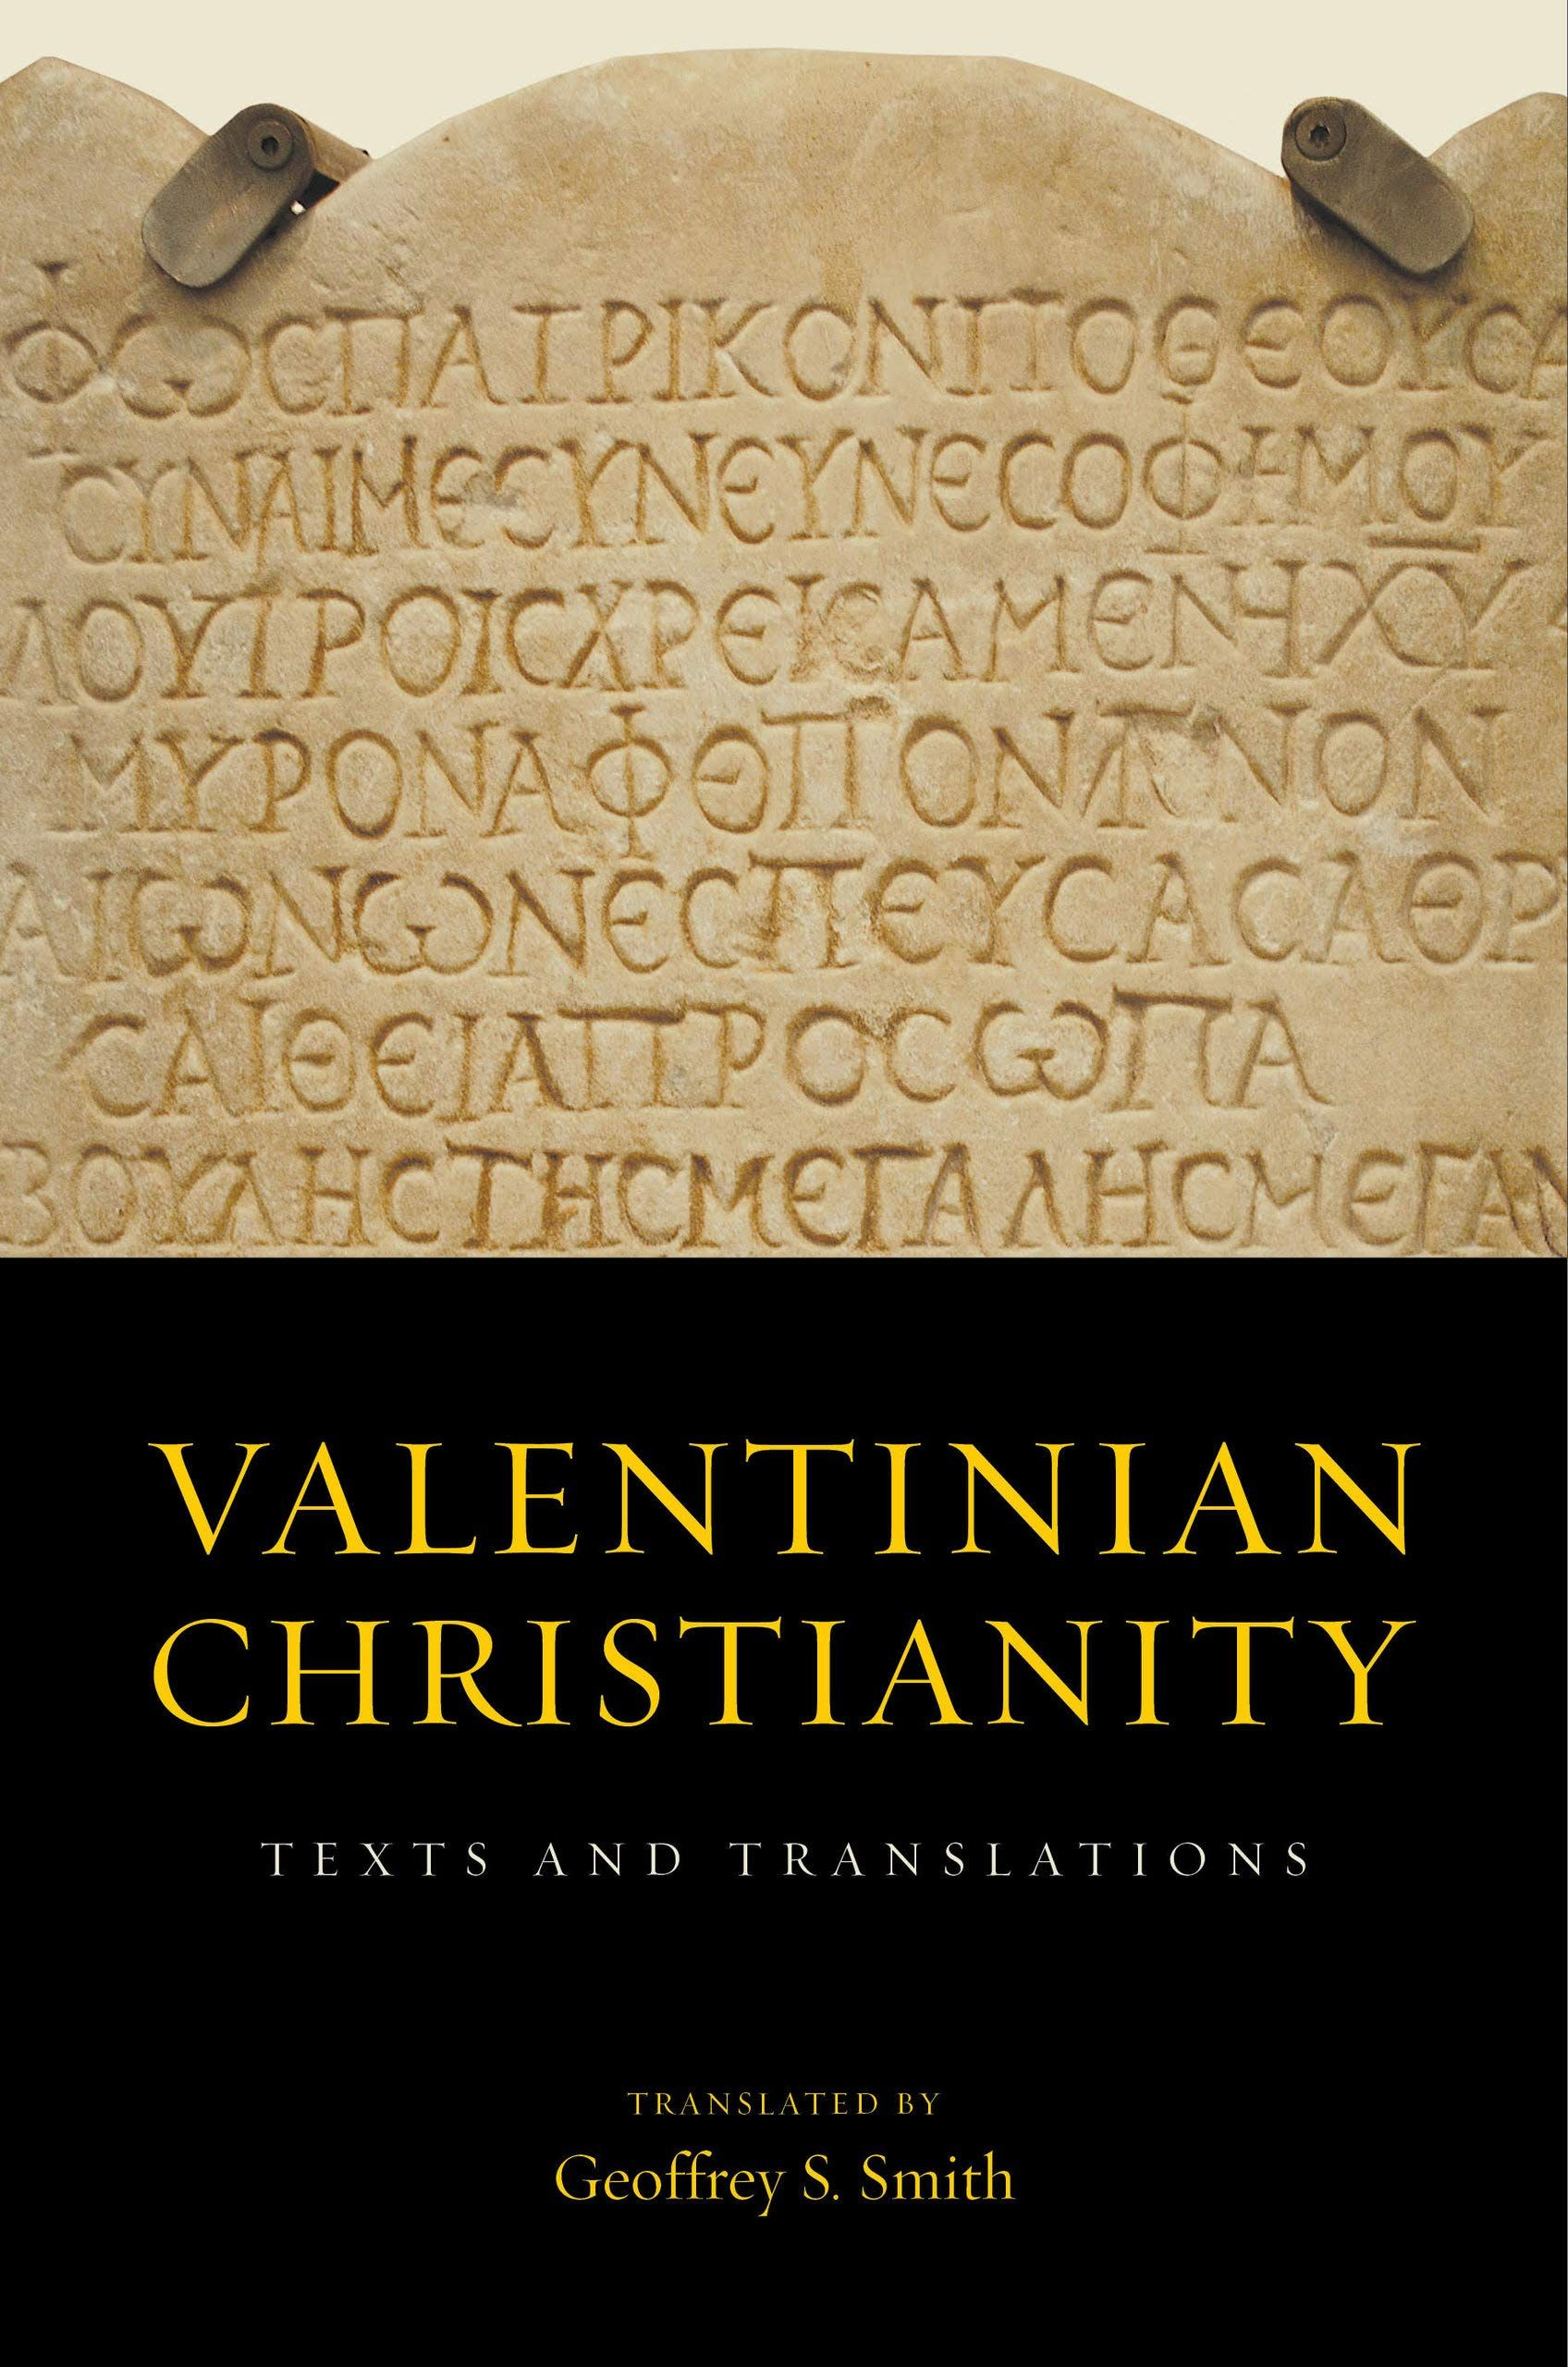 Valentinian Christianity Texts And Translations By Geoffrey S Smith Book Nerd Epub Free Download In 2020 Christianity Gnostic Gospels Texts